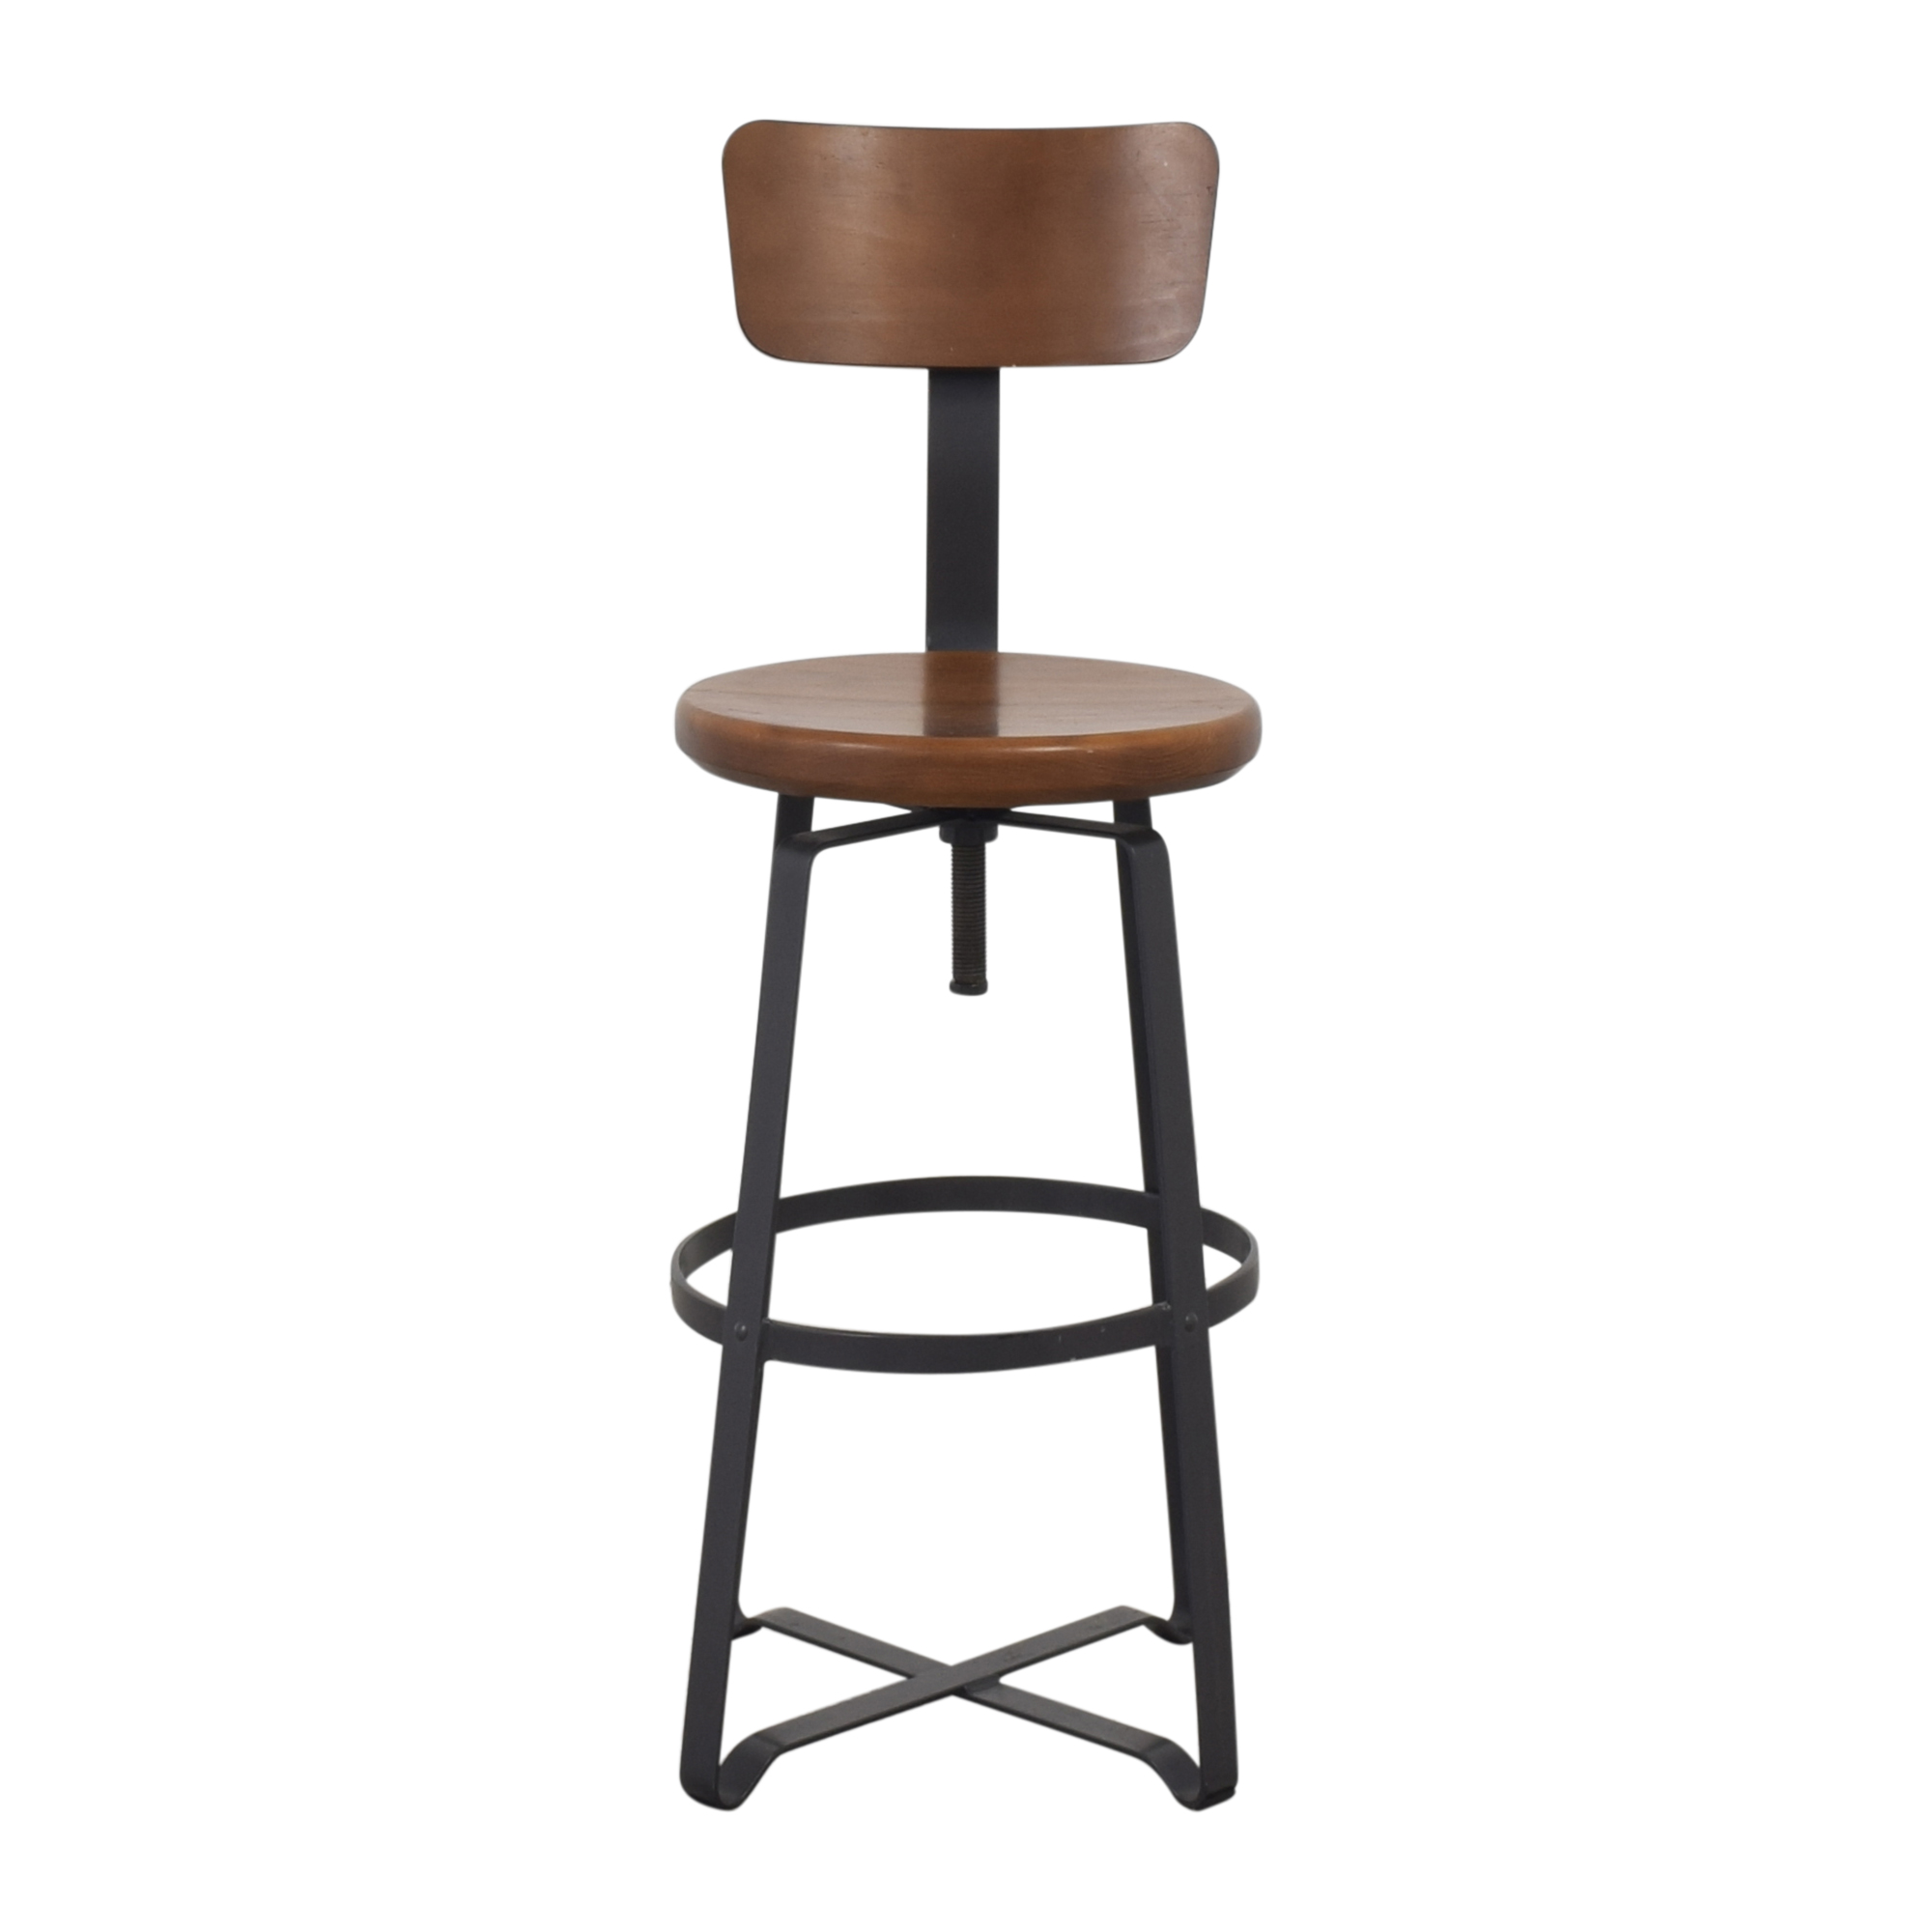 West Elm Adjustable Industrial Stool with Back / Stools